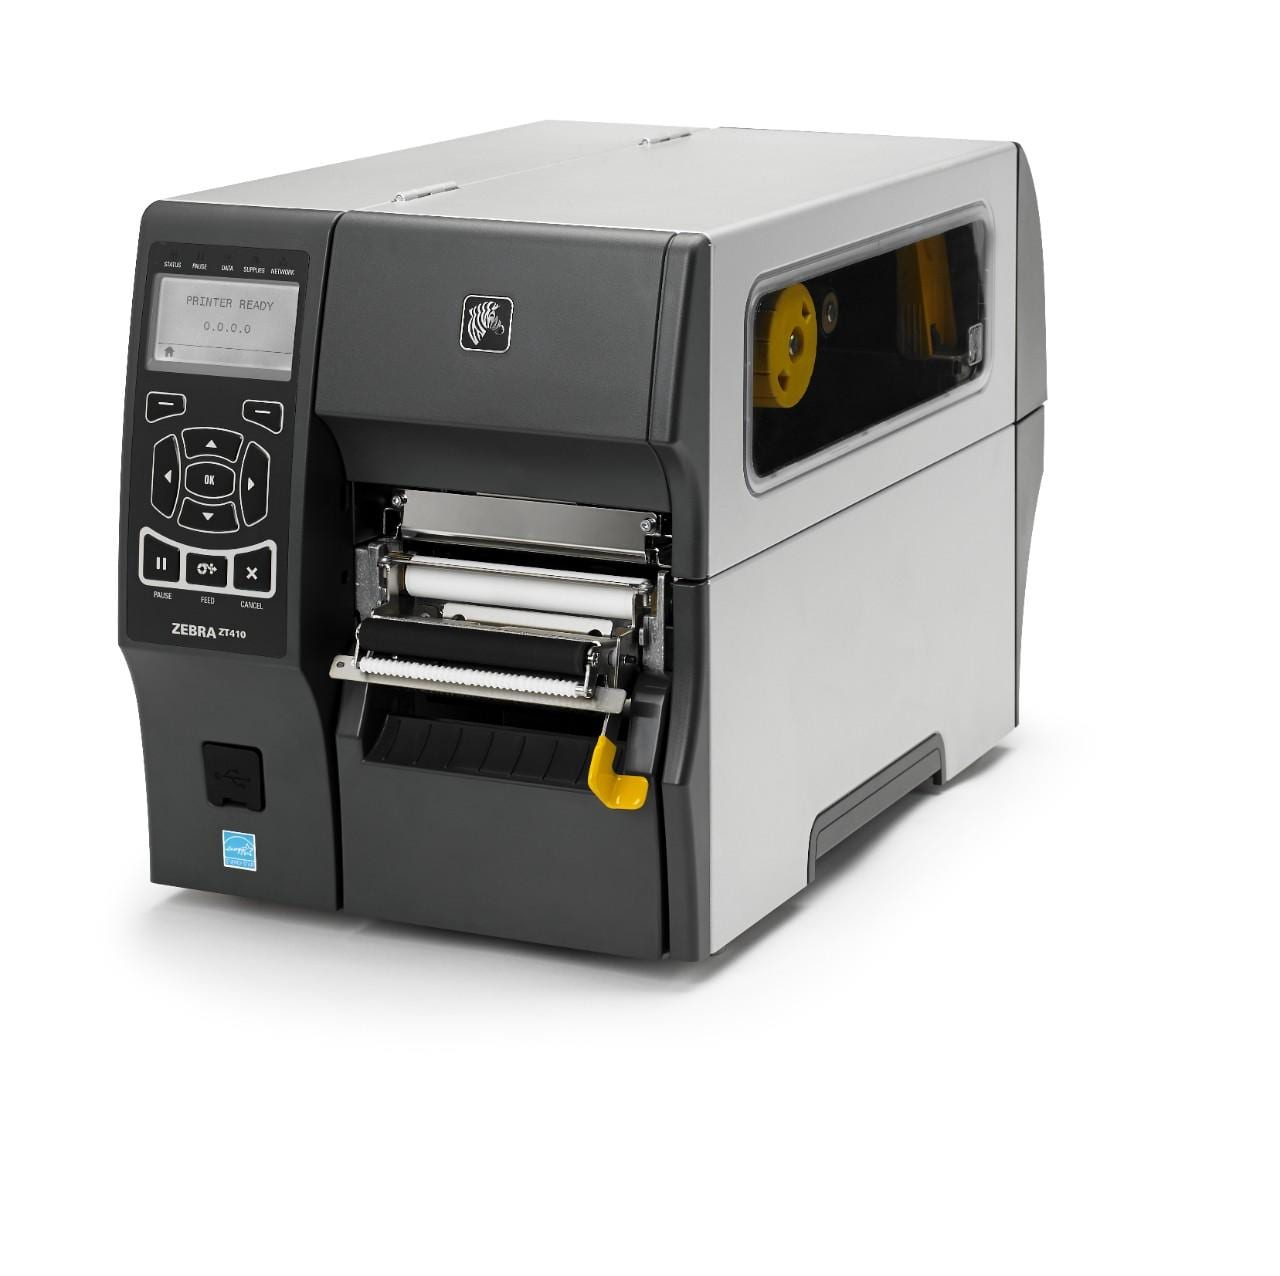 ZT400 Series Industrial Printer